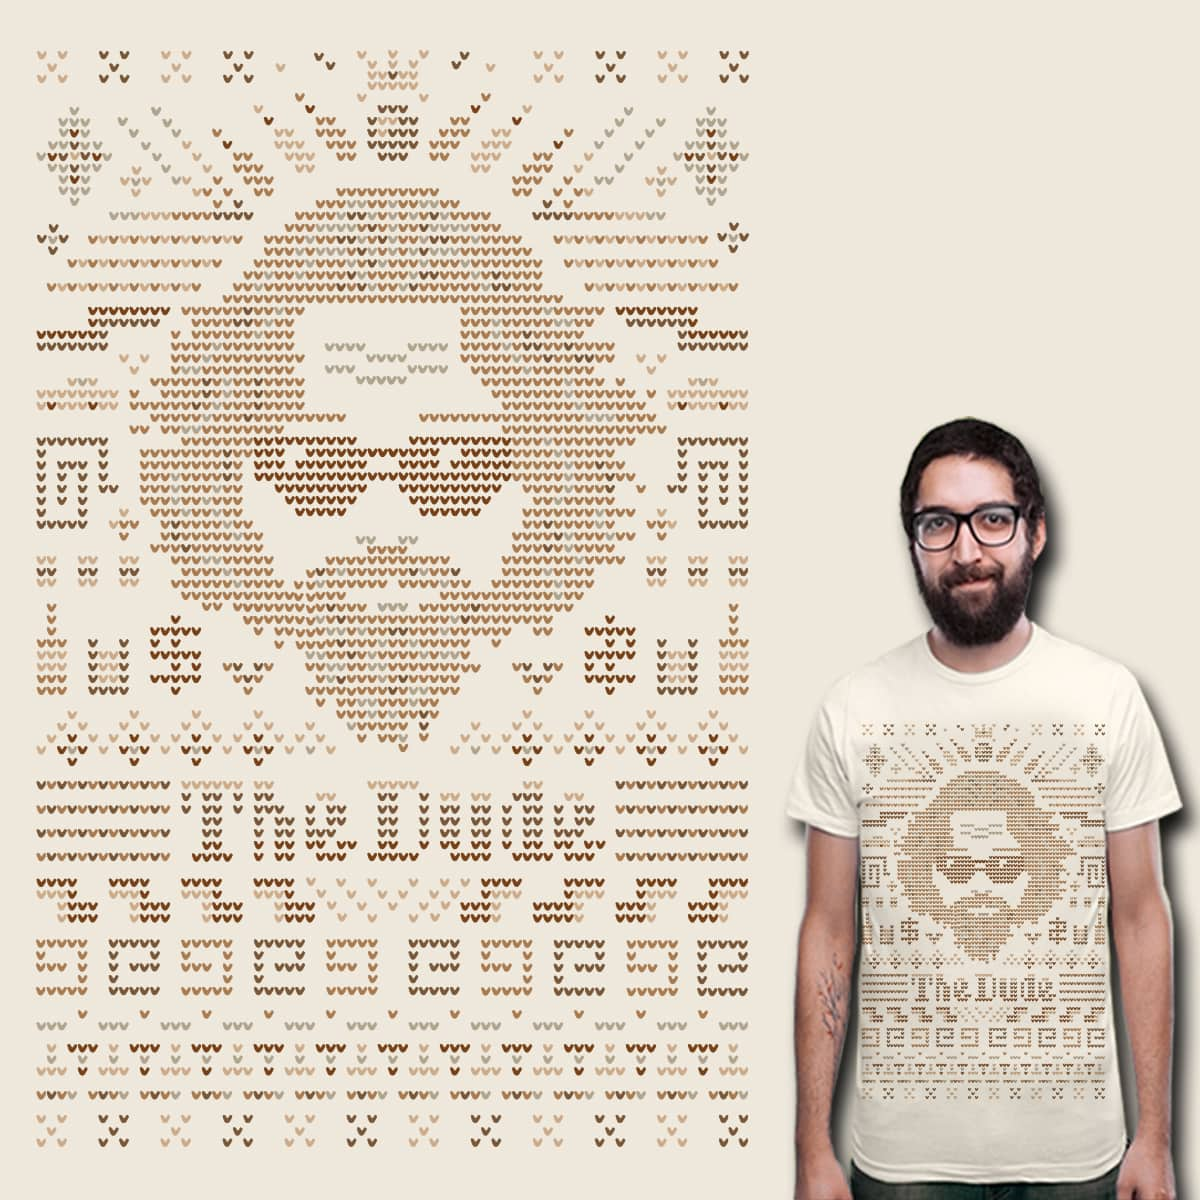 Knitted Dude by Leo Canham on Threadless